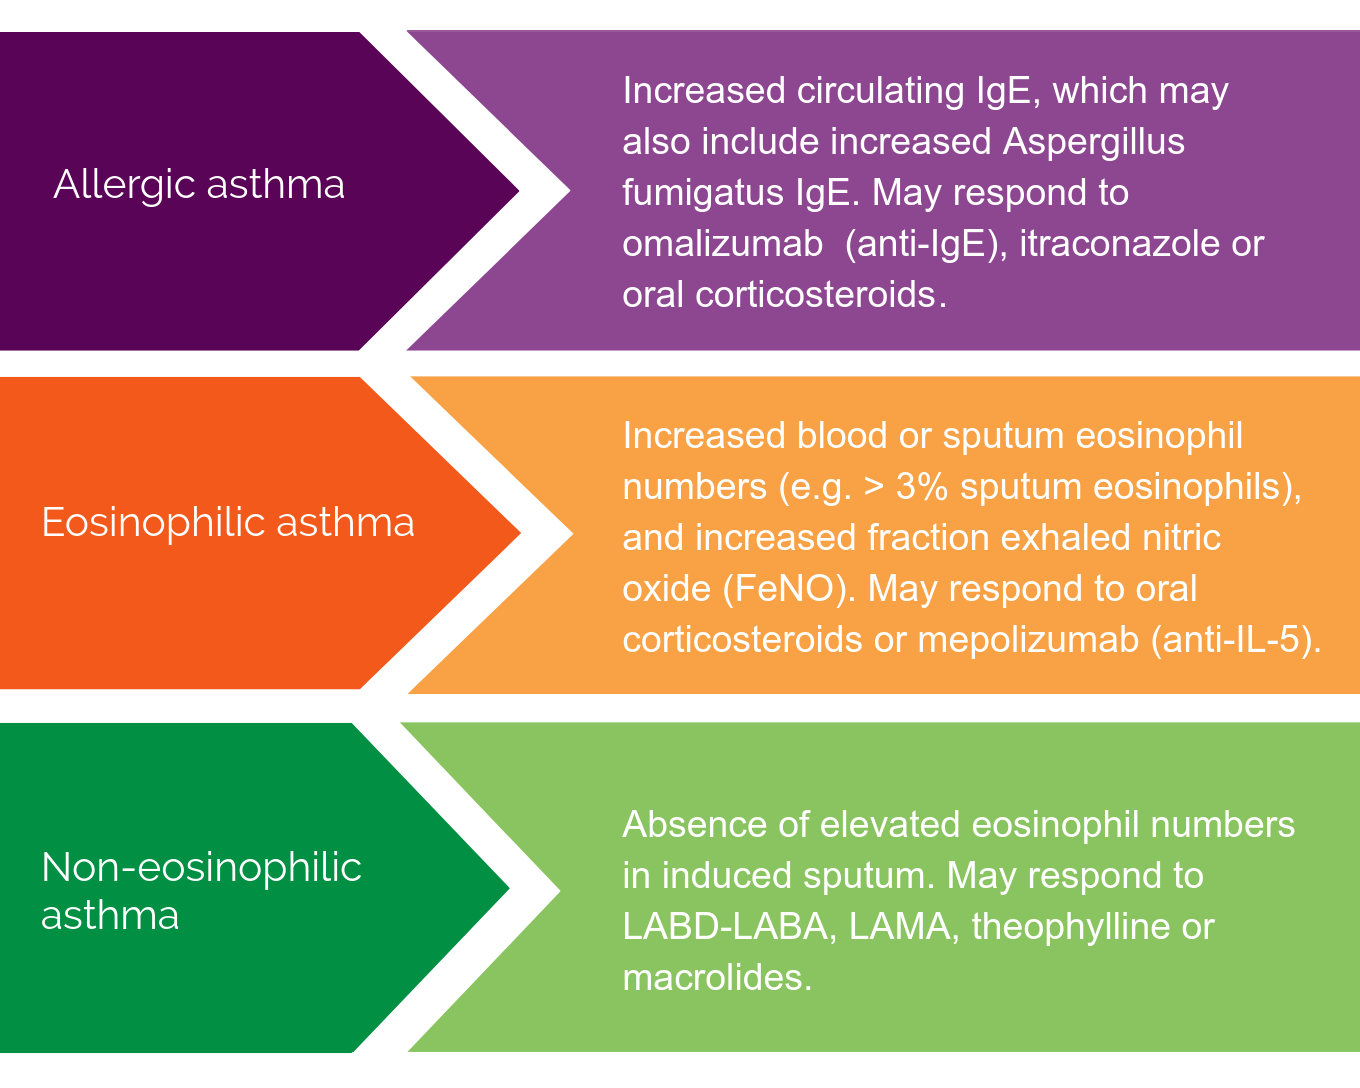 types of asthma phenotypes, allergic asthma, eosinophilic asthma and non-eosinophilic asthma